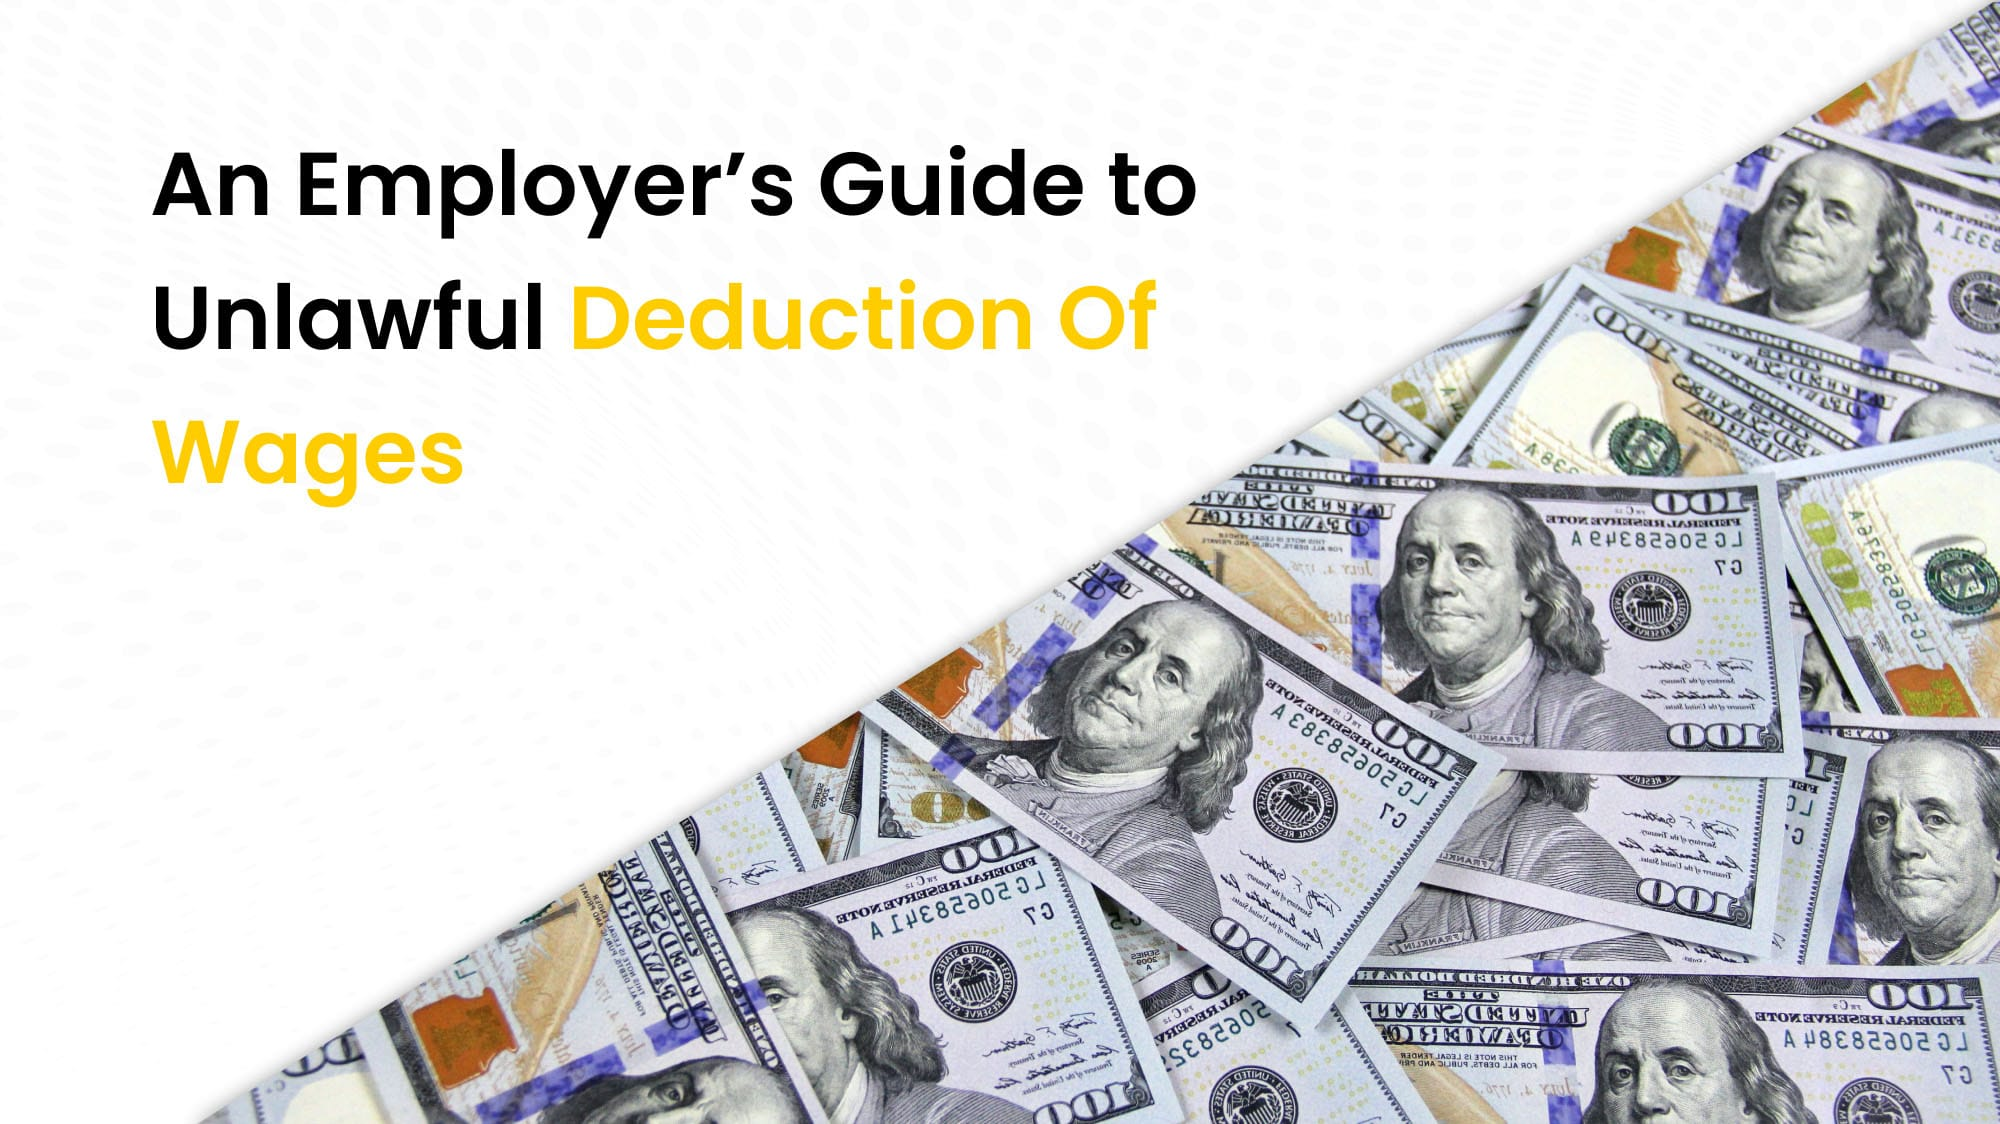 An employer_s guide to unlawful deduction of wages